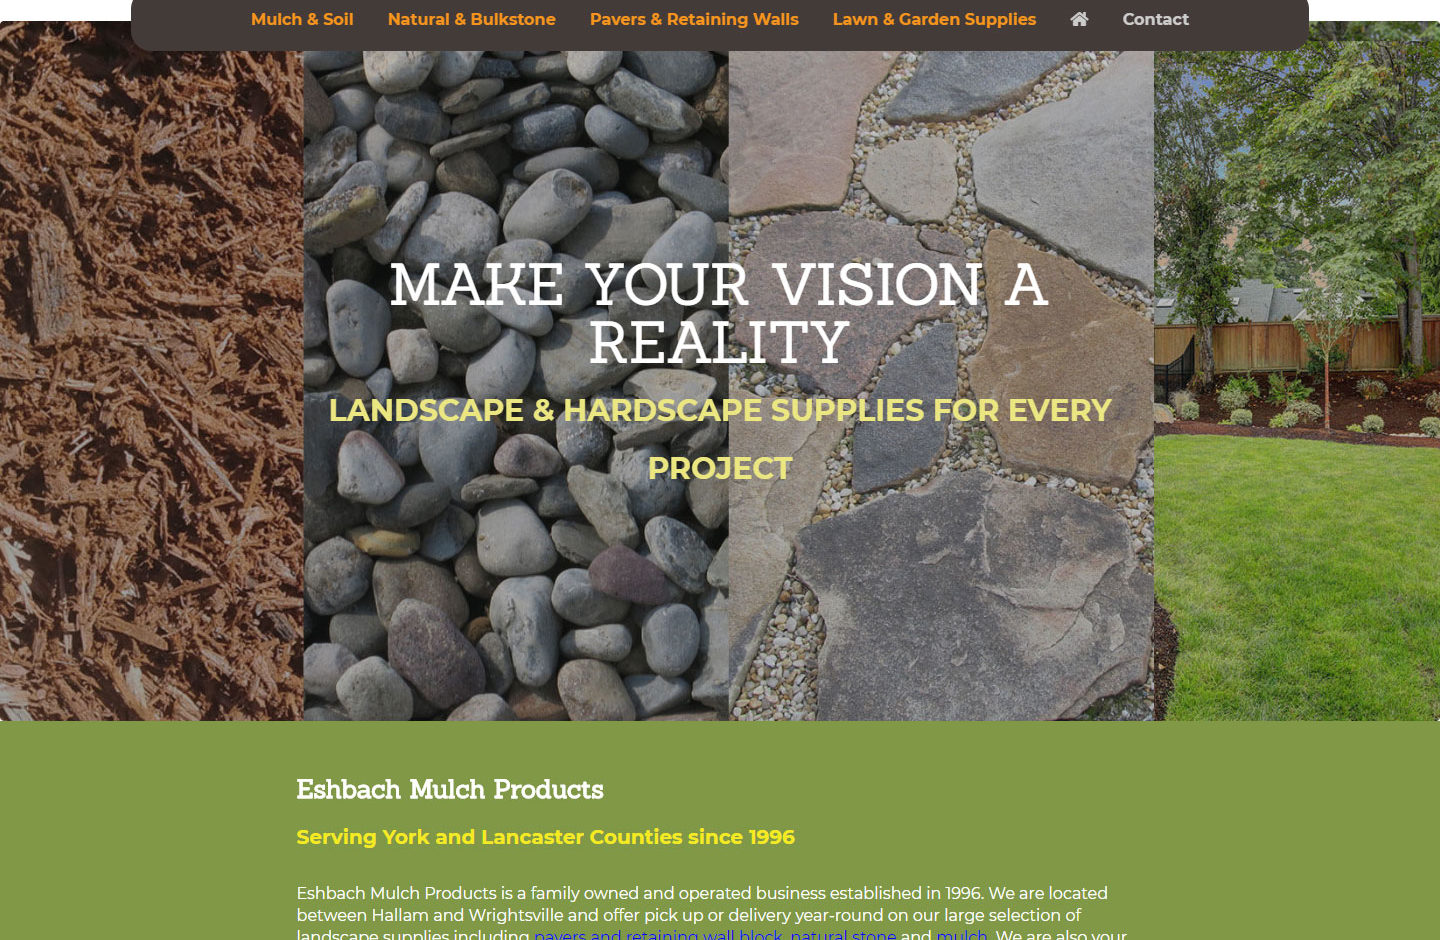 Eshbach Mulch Products